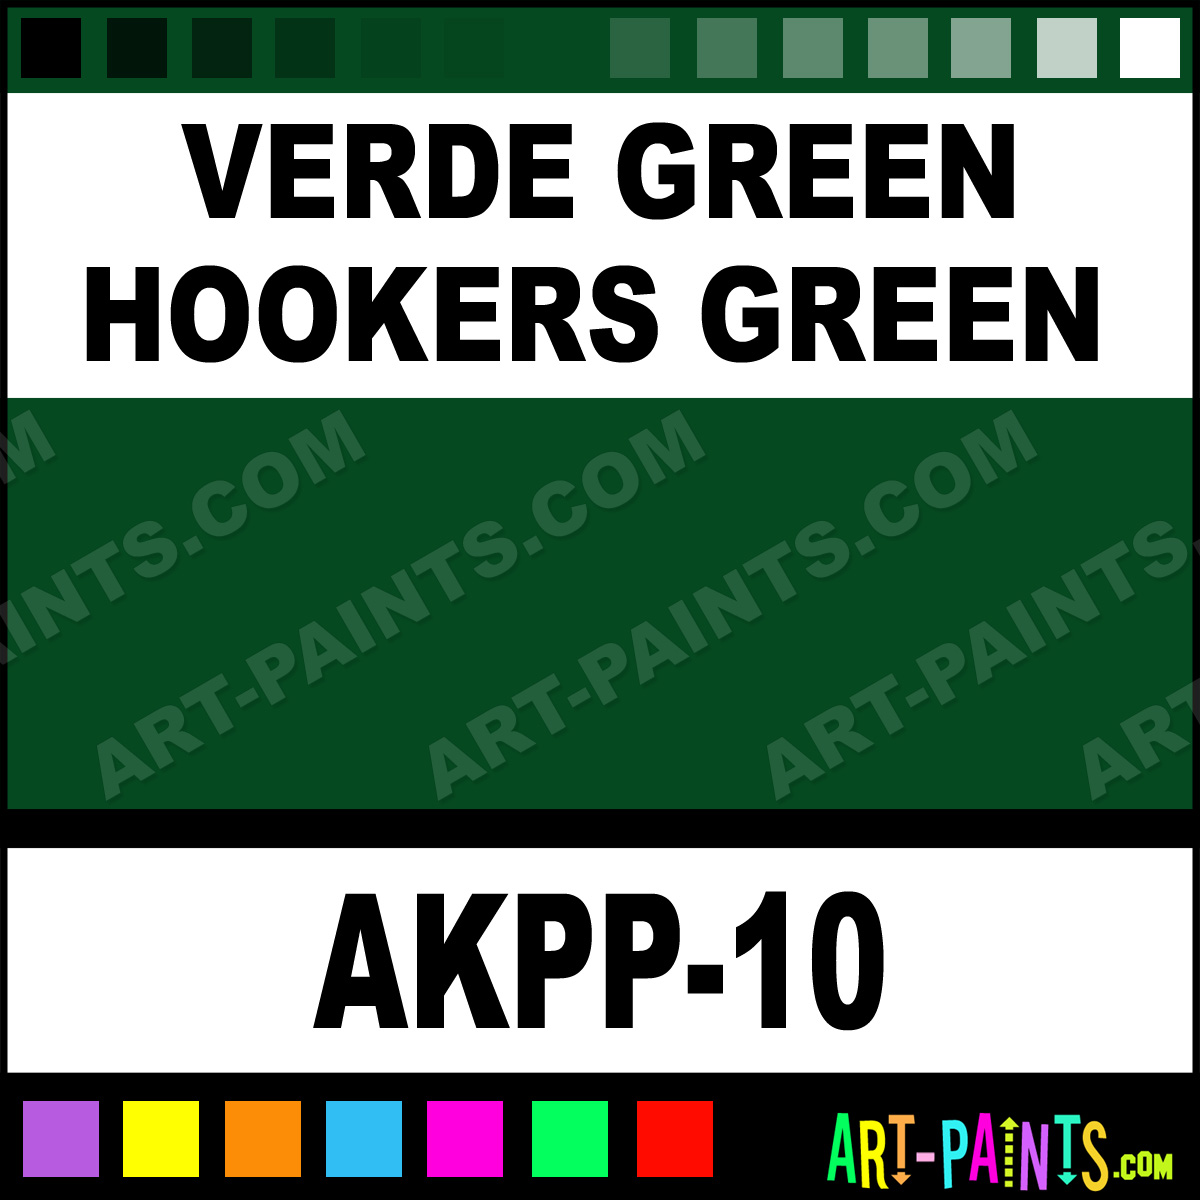 Paints Oil The Art Store Hookers Green Hookers Green.